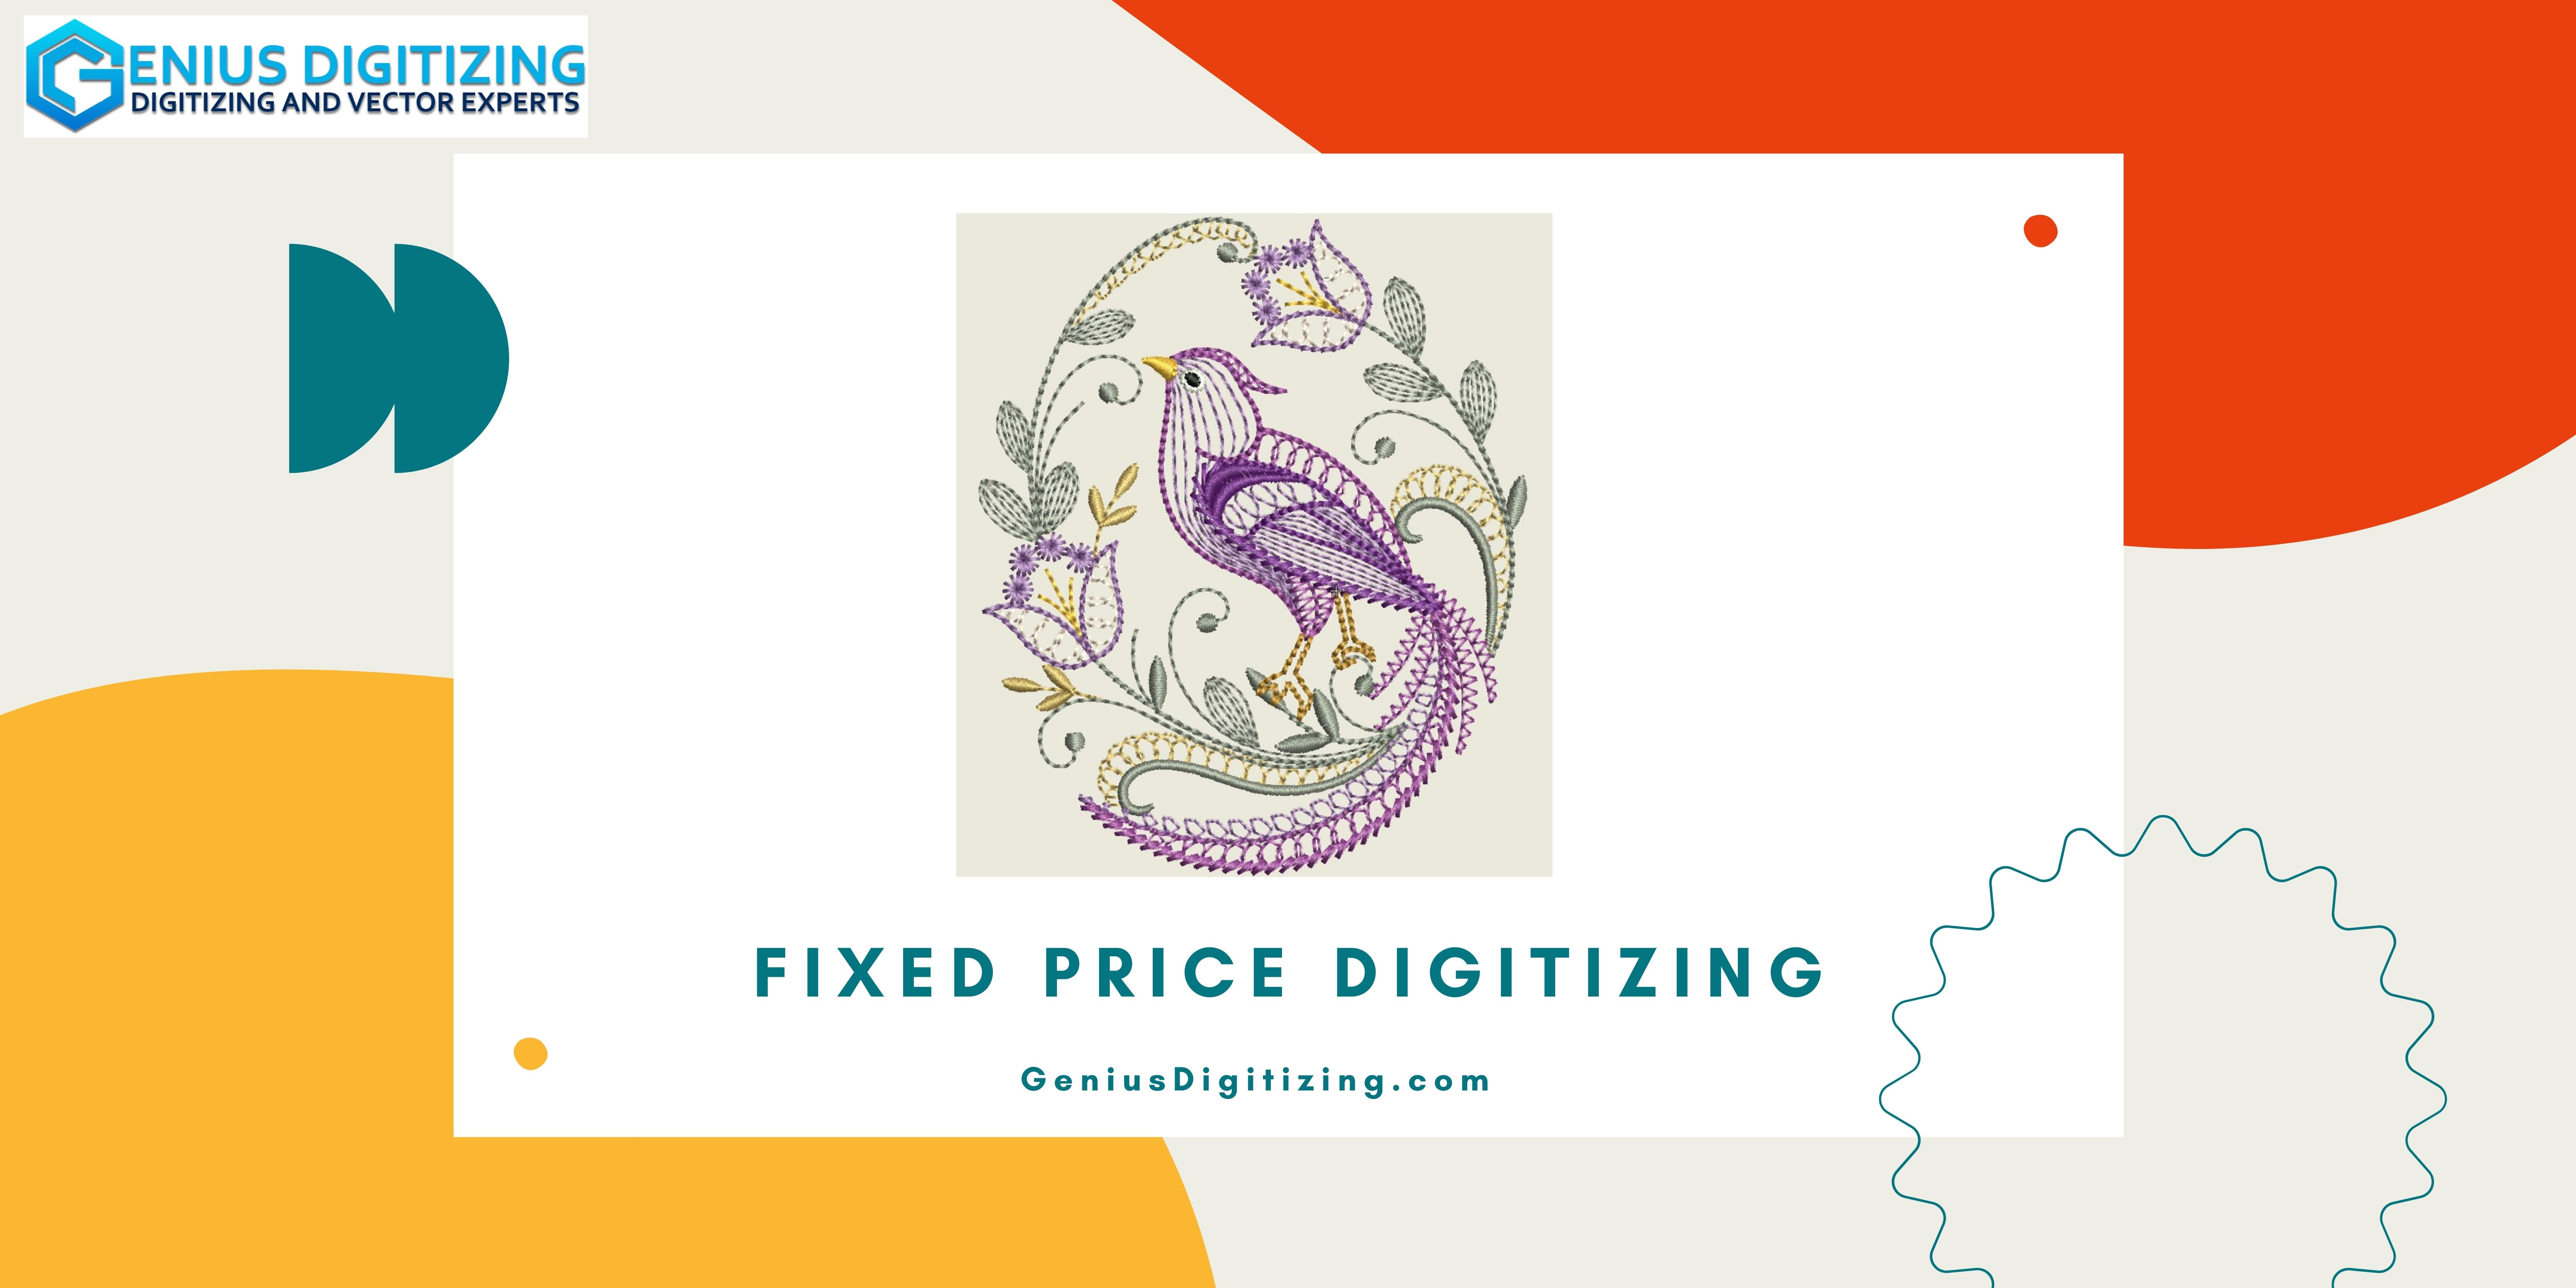 Benefit From Fixed Price Digitizing Today!